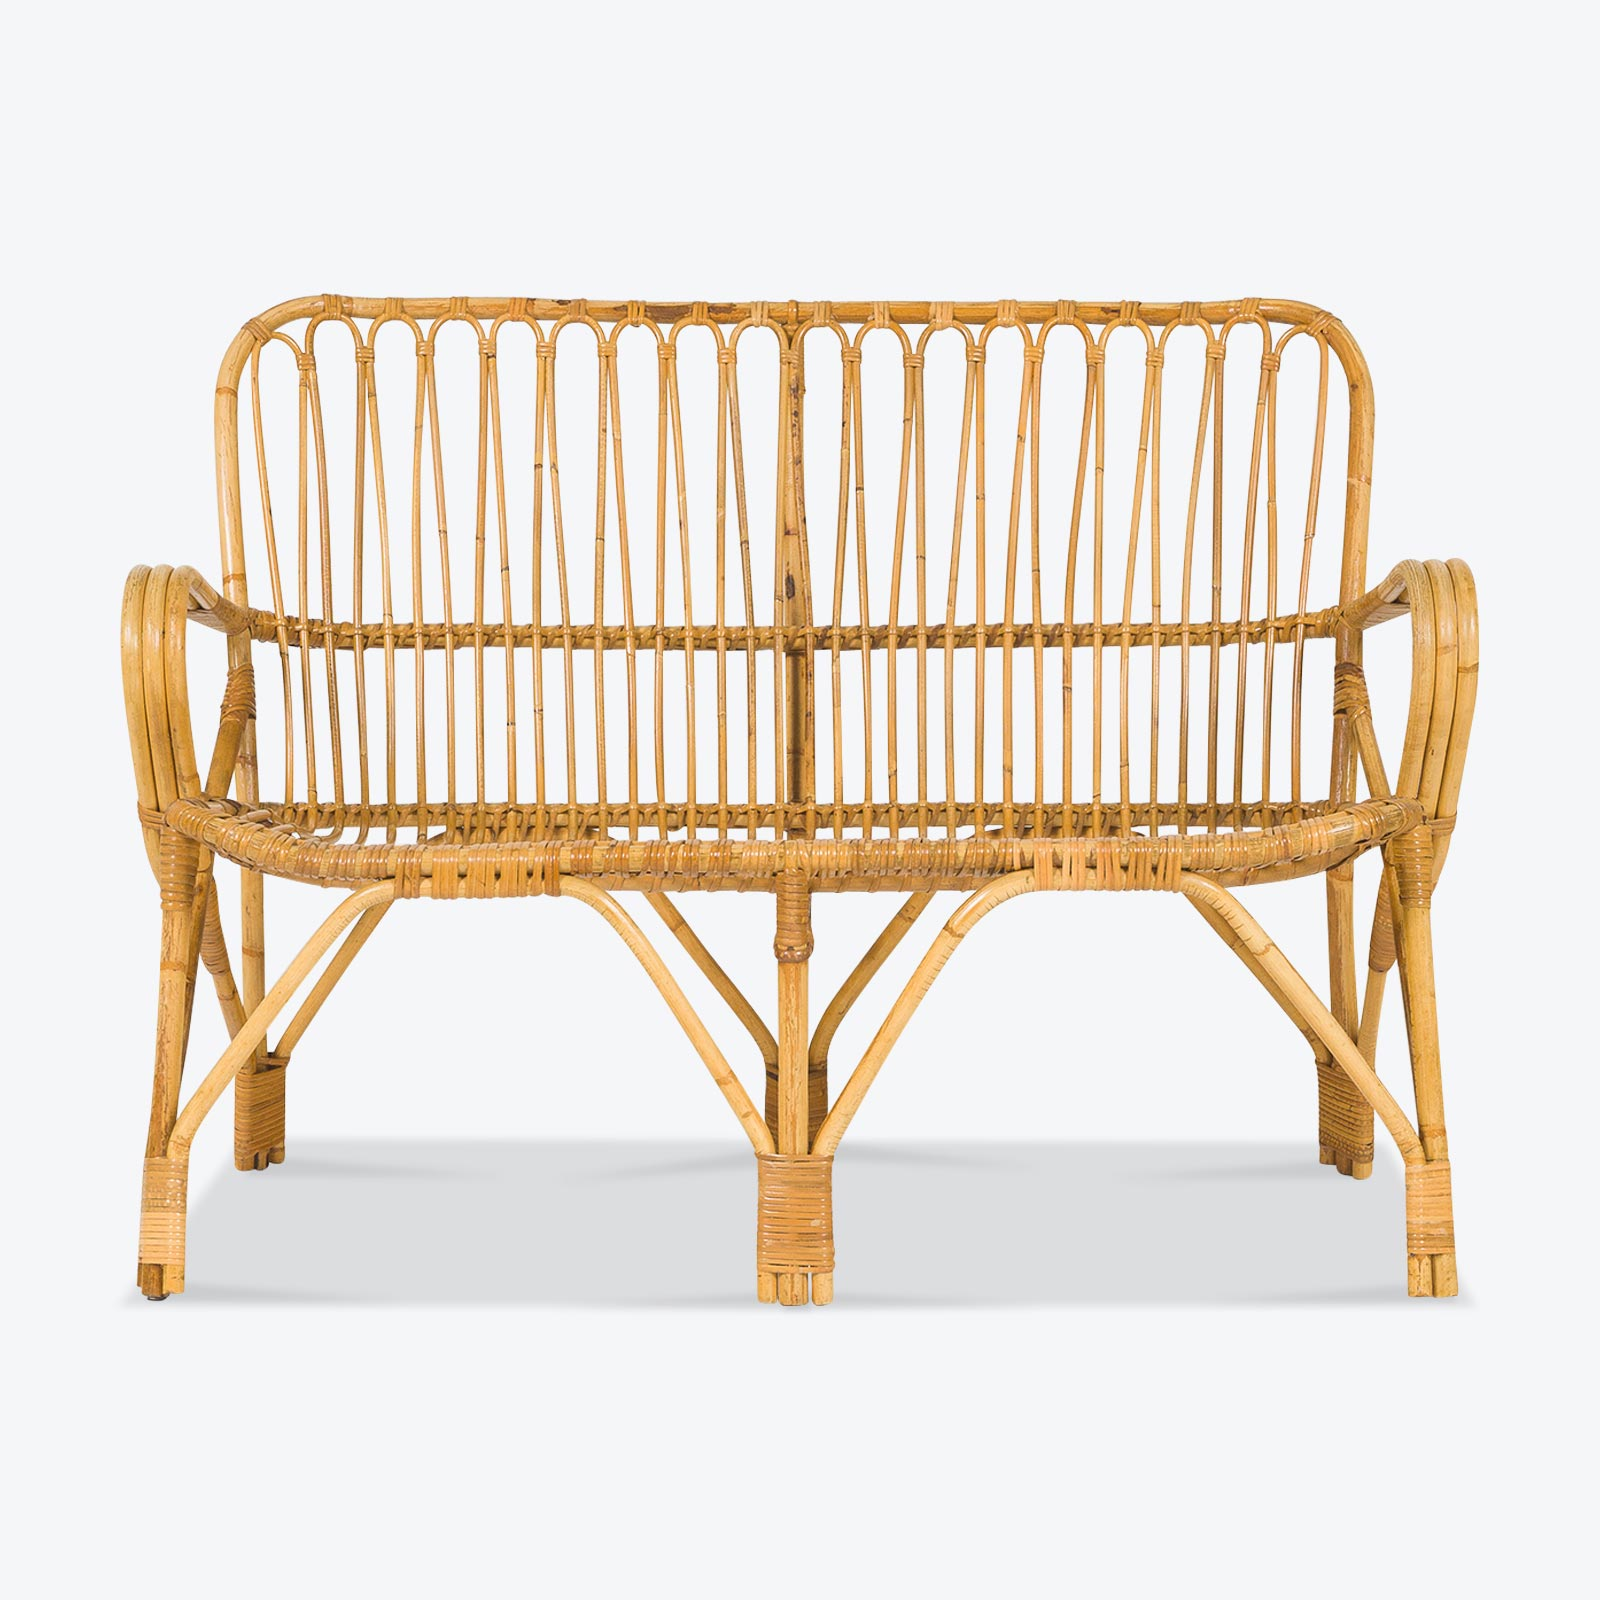 2 Seat Wicker Sofa In Bamboo With Coiled Socks 1960s Denmark 01